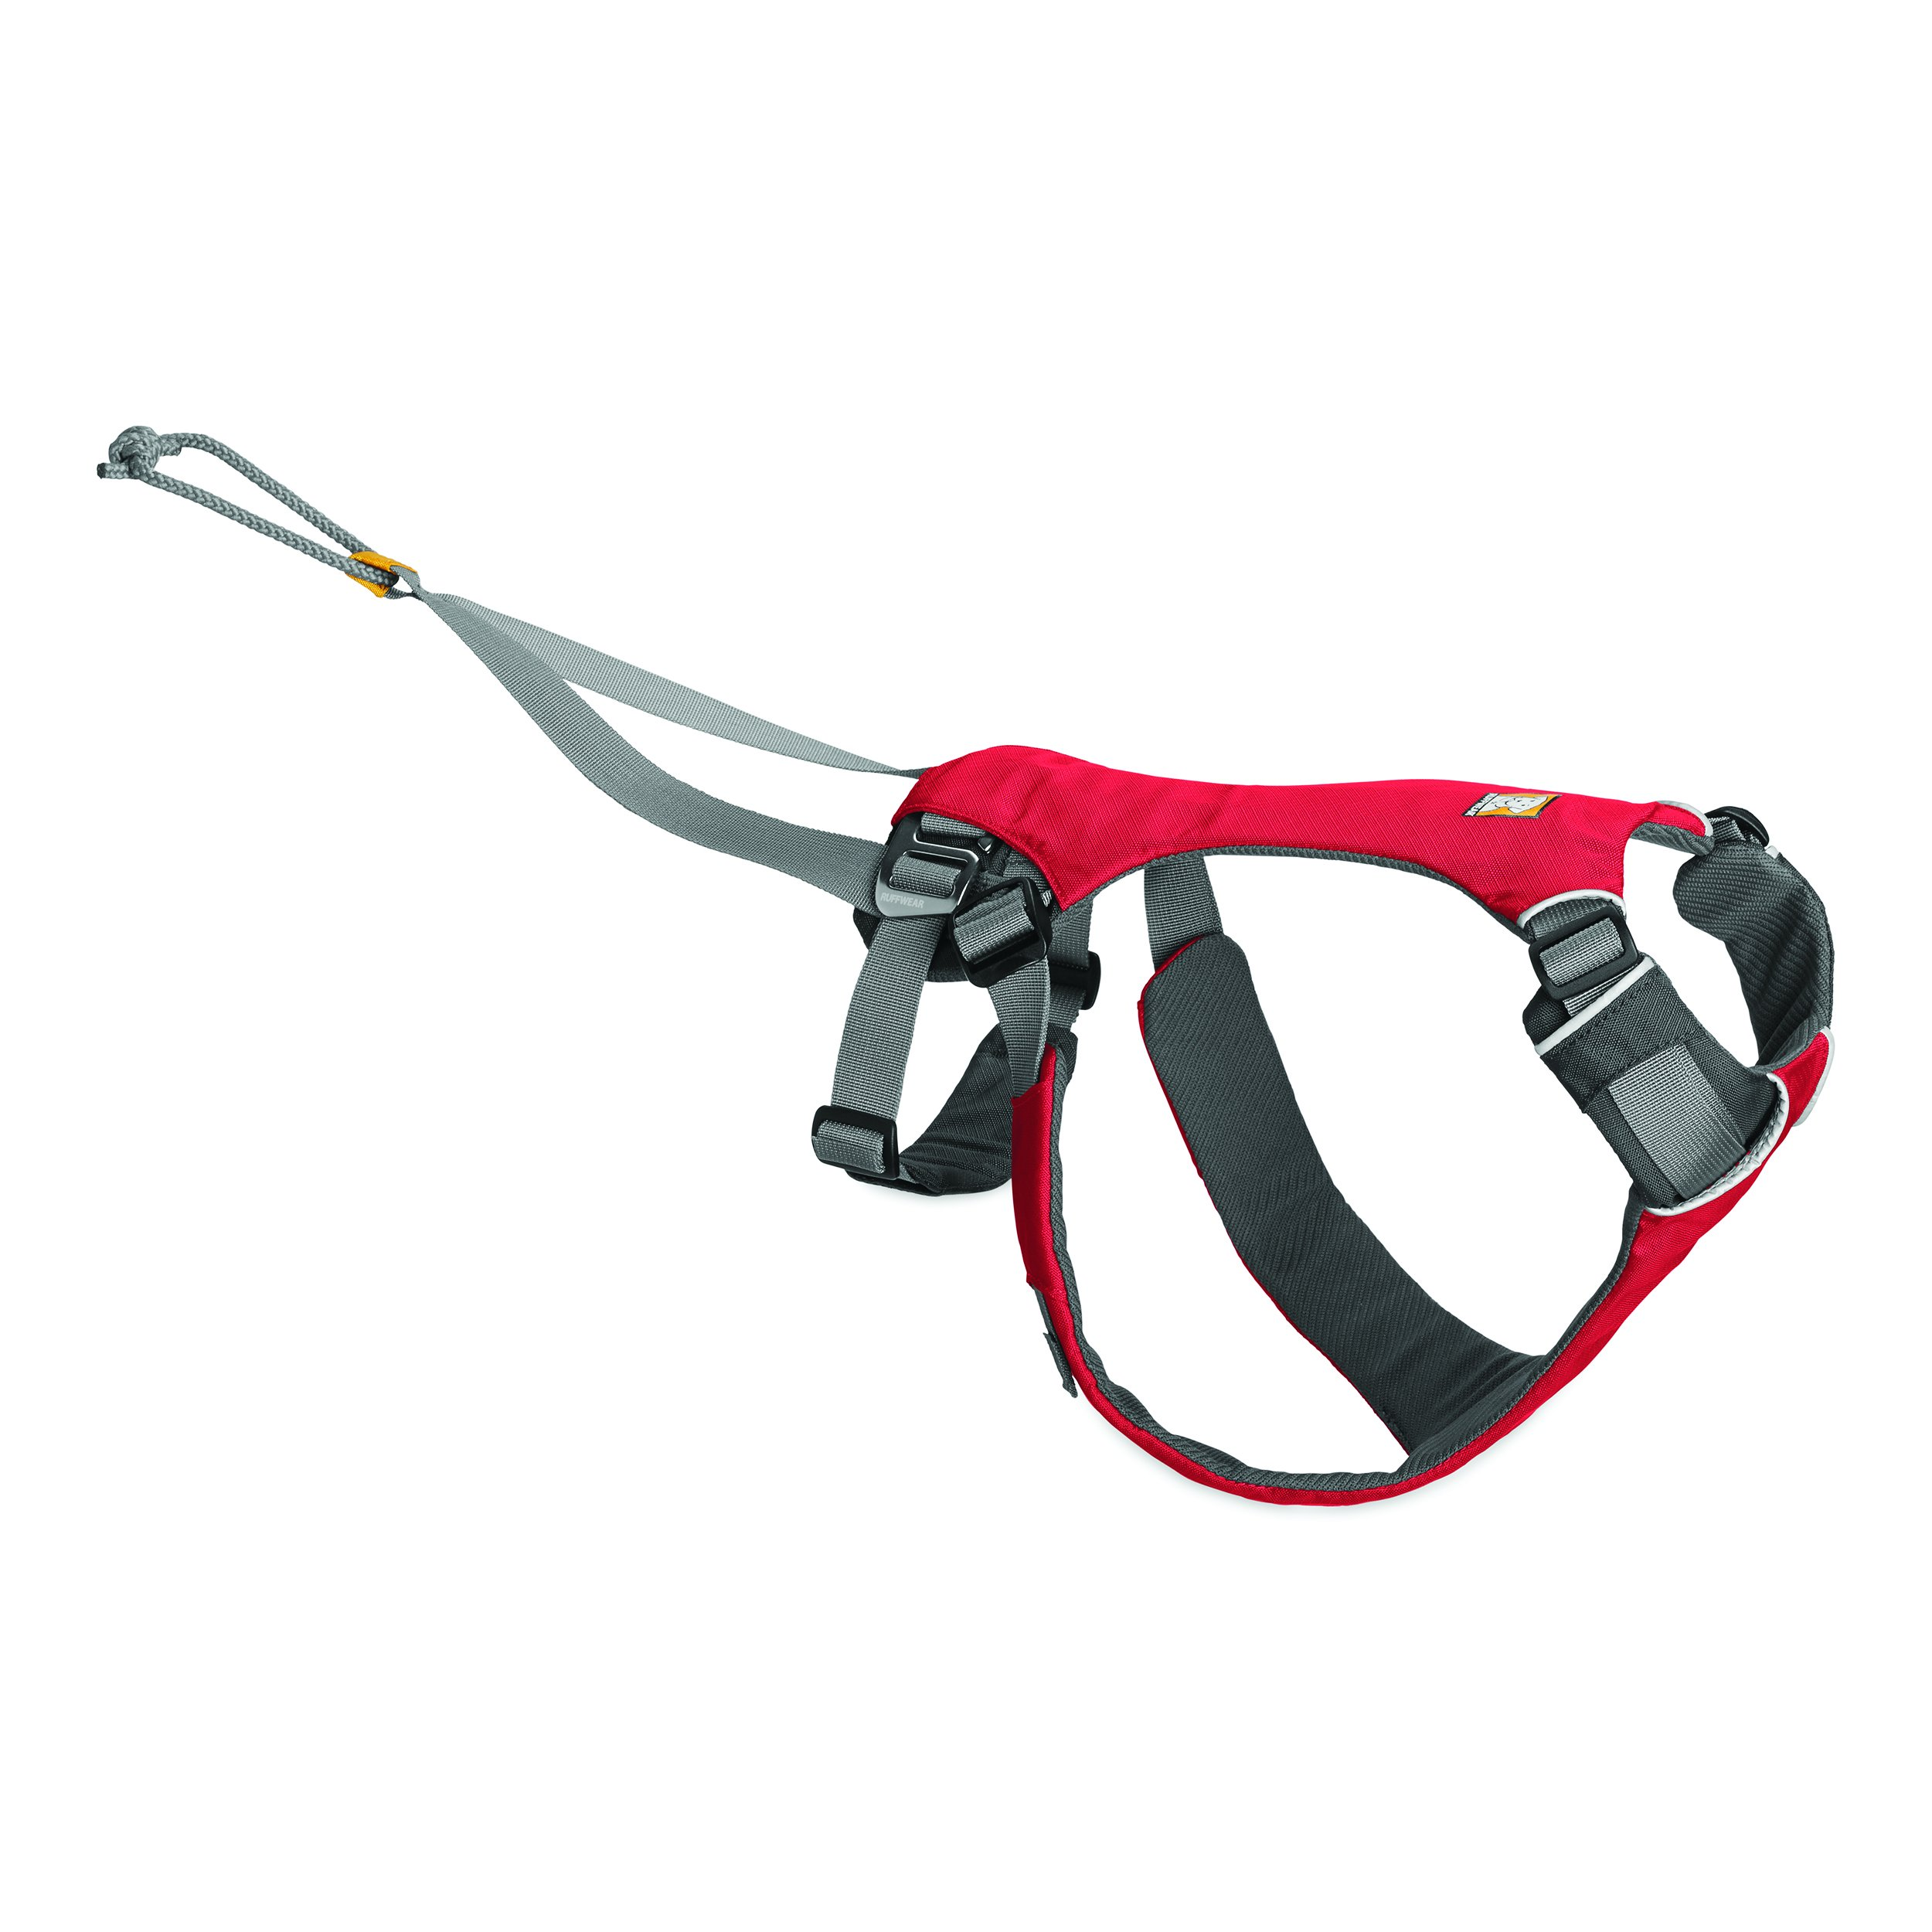 Ruffwear - Omnijore Harness, Dog-Pulling Harness, Red Currant, Large/X-Large by Ruffwear (Image #1)